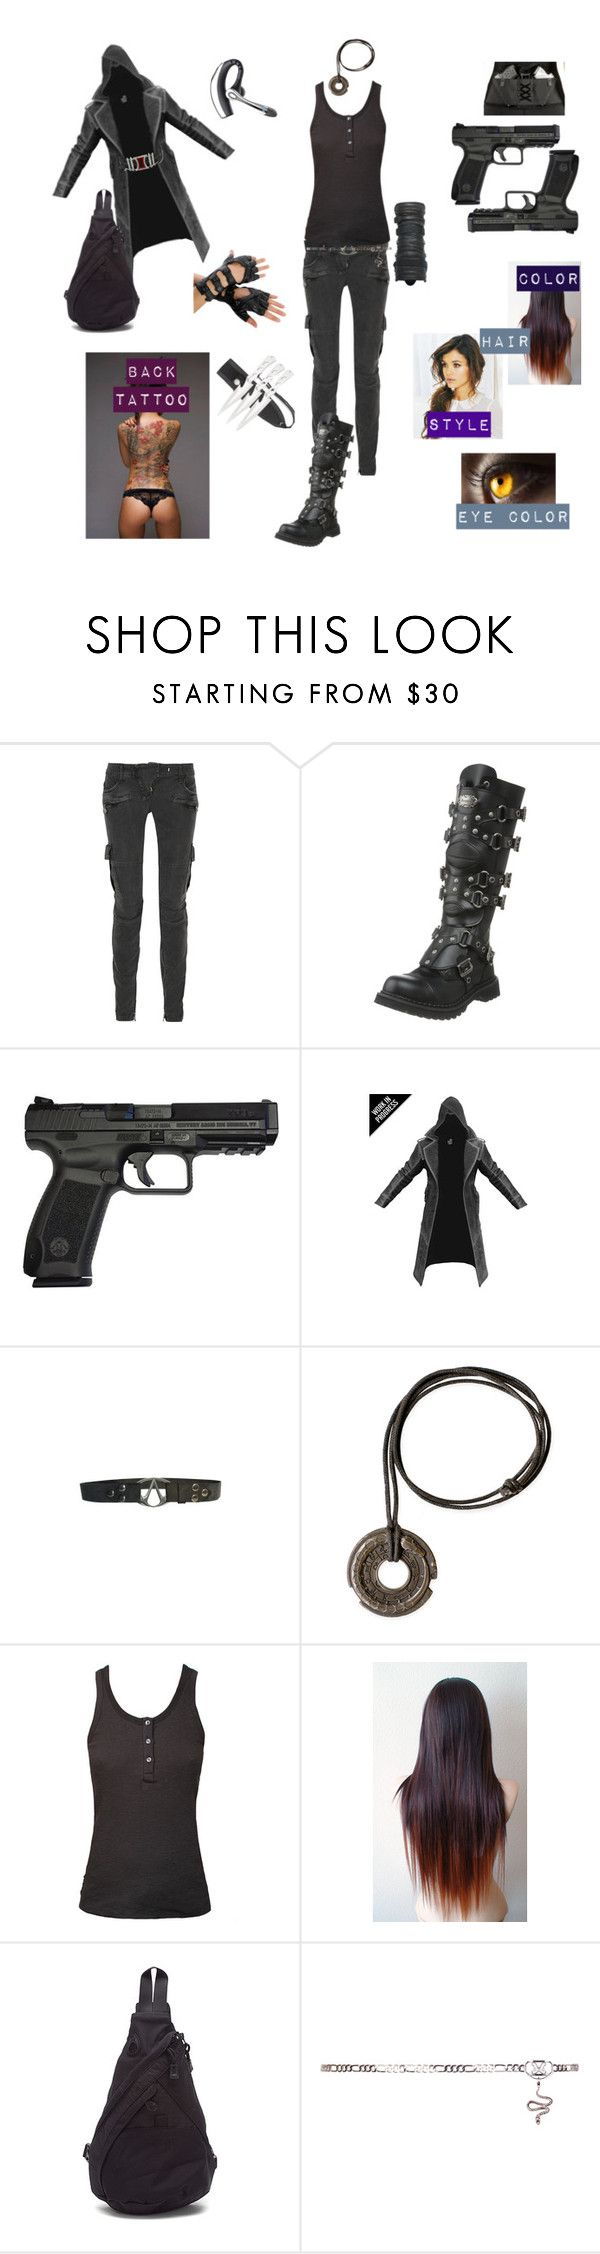 """Modern Assassin's Creed Fan Fiction OC"" by shadow-girl-95 ❤ liked on Polyvore featuring Balmain, Demonia, Ragdoll, AmeriBag, Venom and modern"